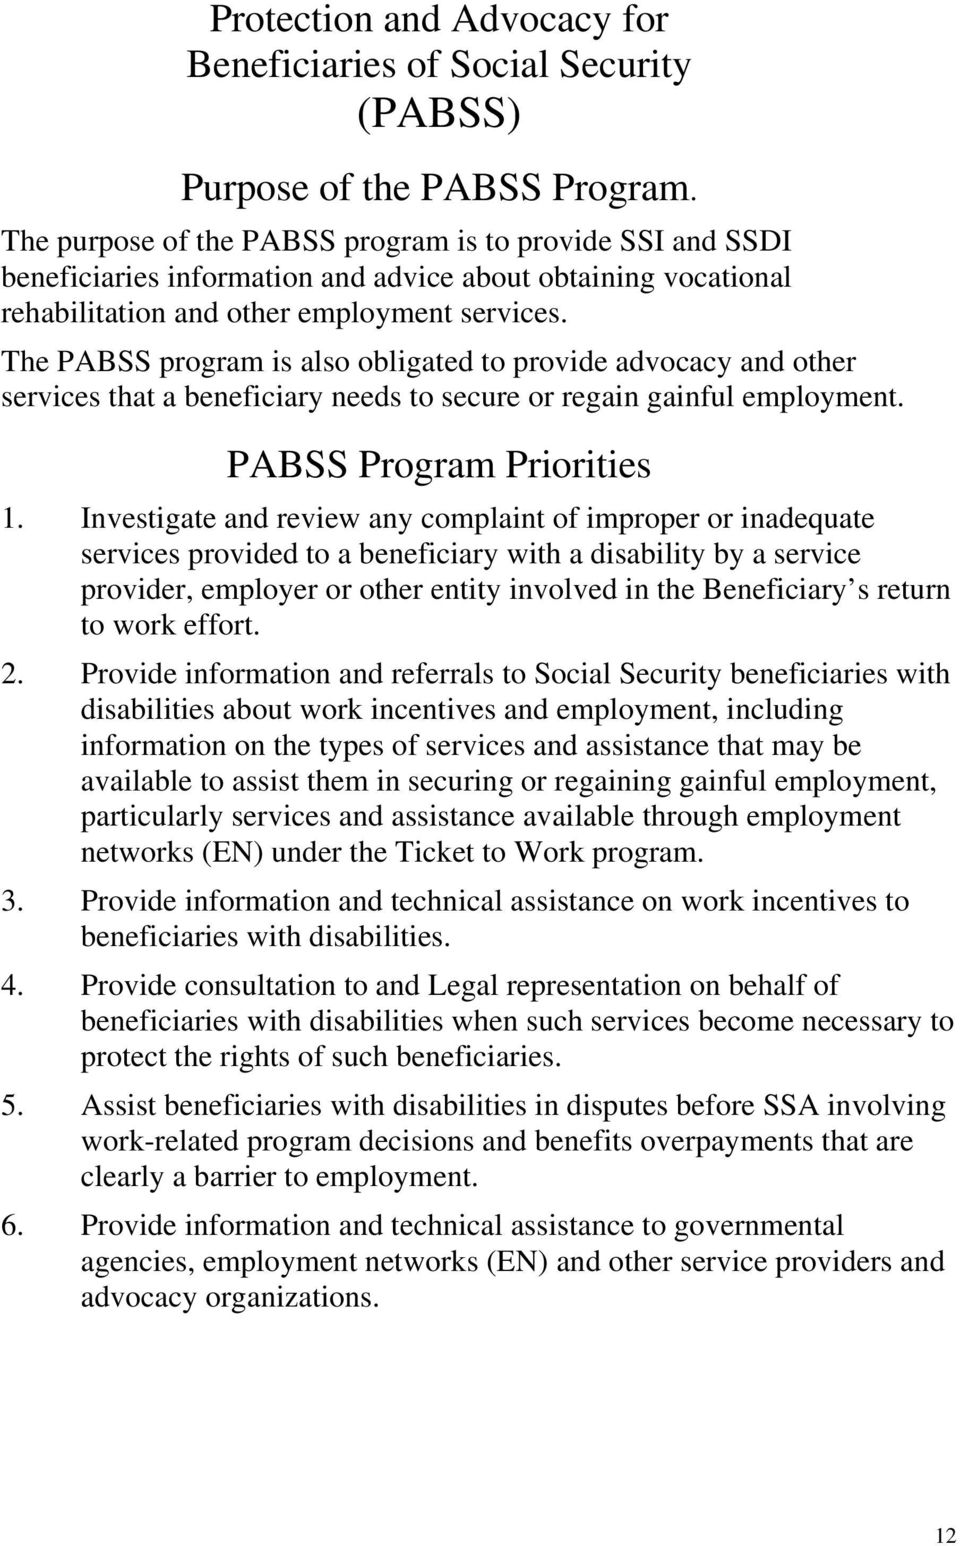 The PABSS program is also obligated to provide advocacy and other services that a beneficiary needs to secure or regain gainful employment. PABSS Program Priorities 1.